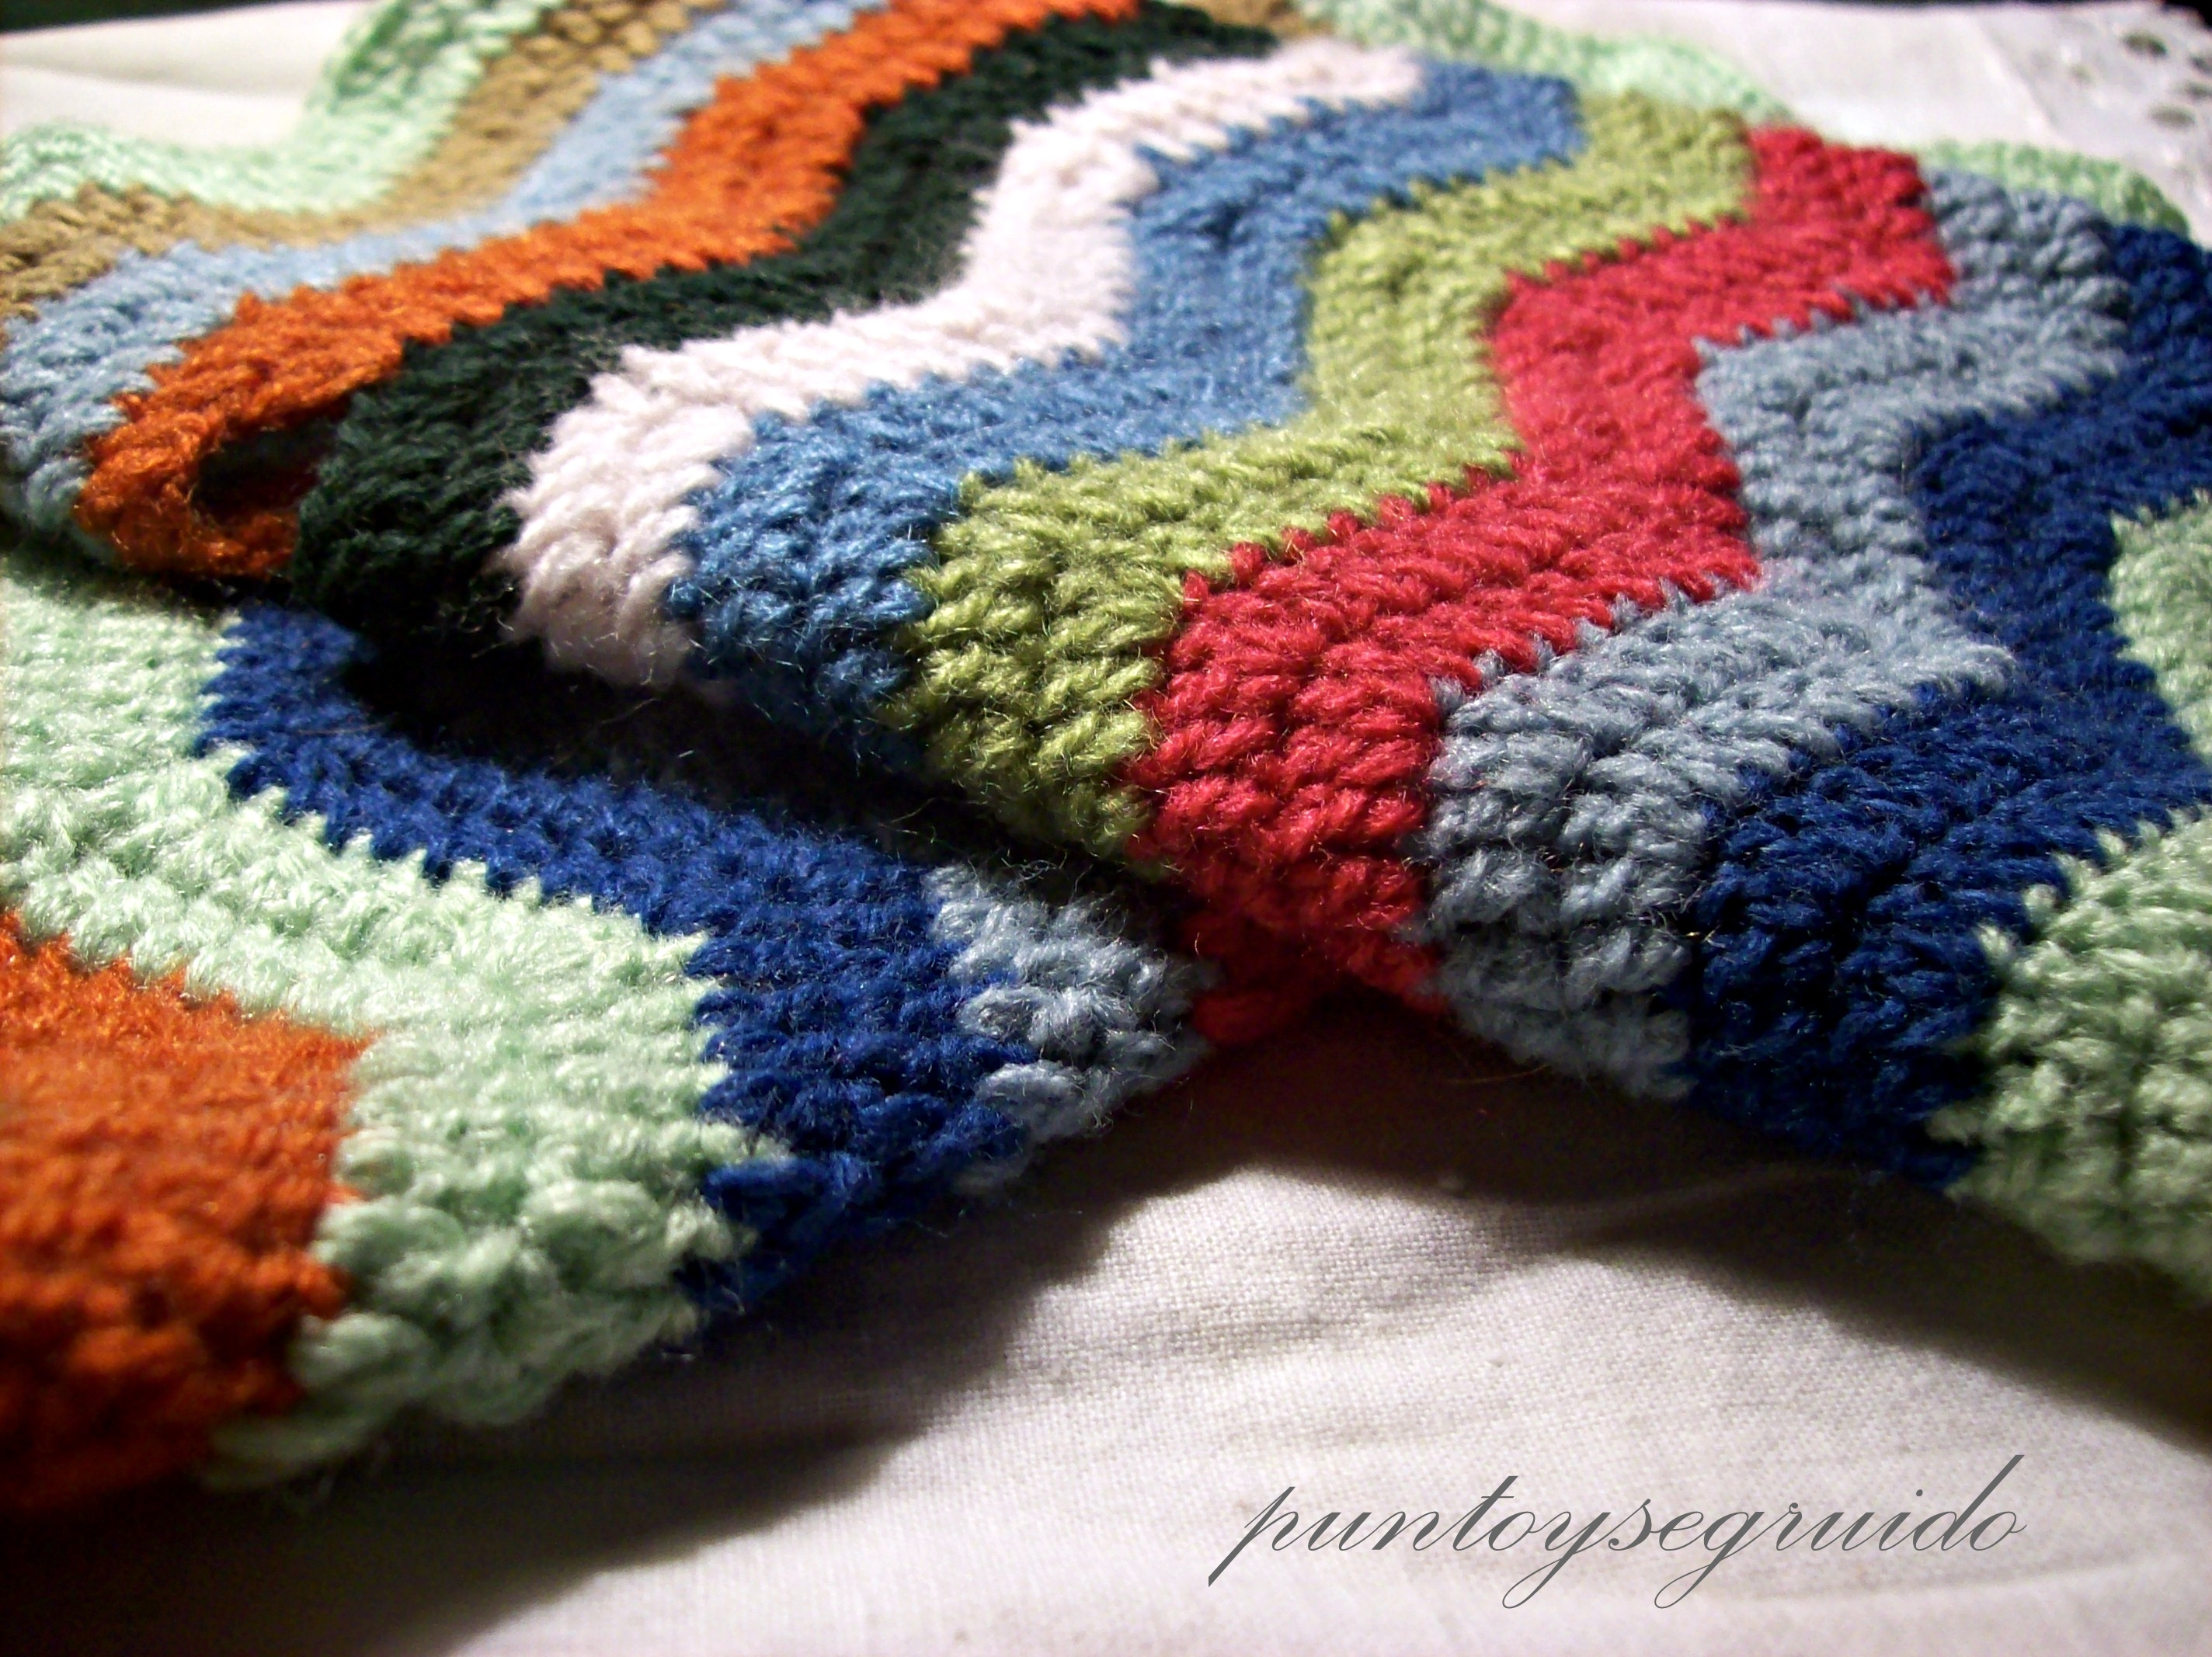 Crochet Afghan Pattern Zig Zag : FREE CROCHET ZIG ZAG PATTERN - Crochet ? Learn How to Crochet